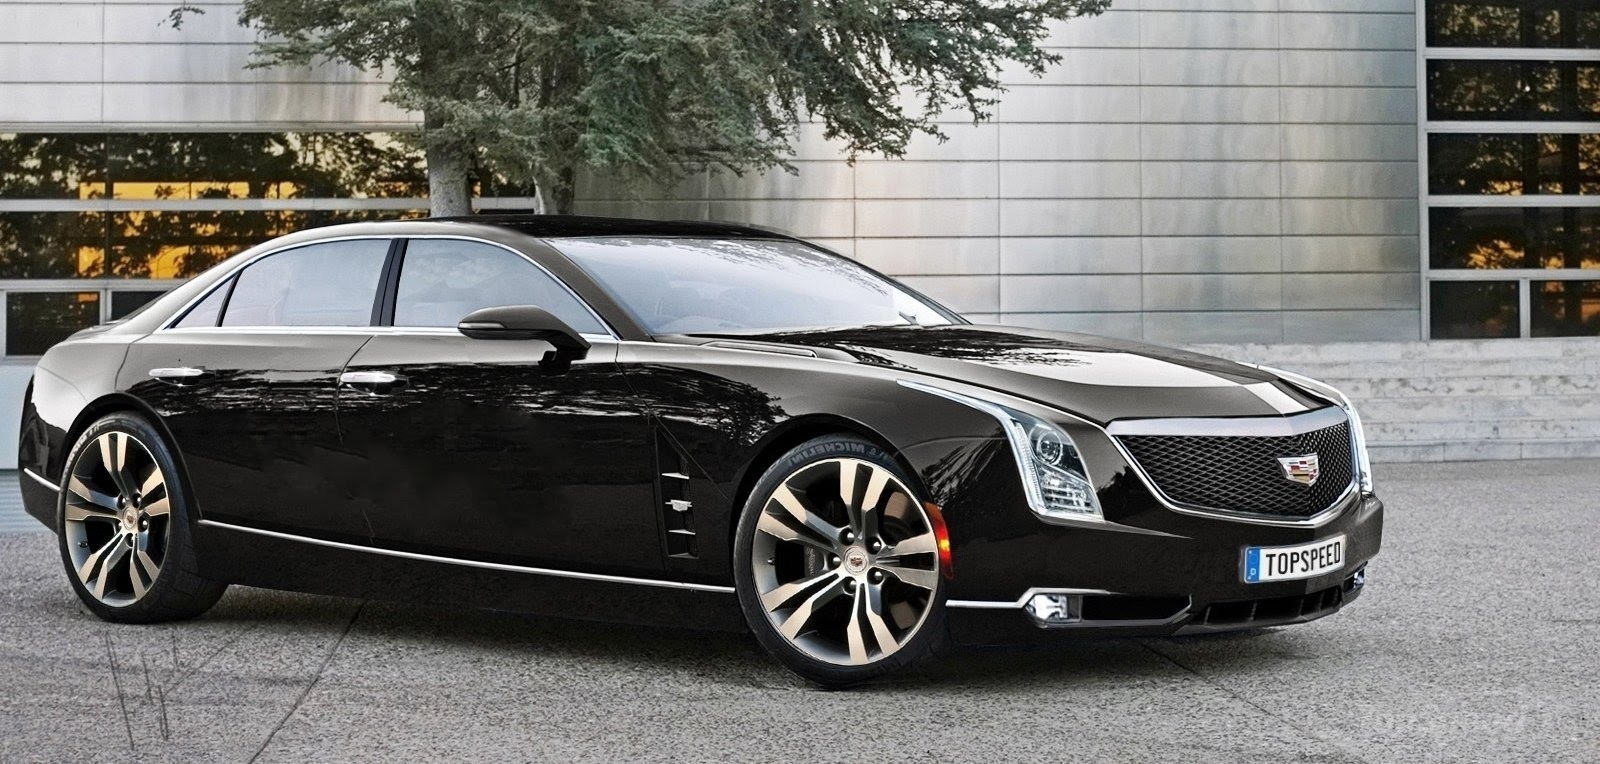 93 All New 2020 Cadillac Deville Review and Release date